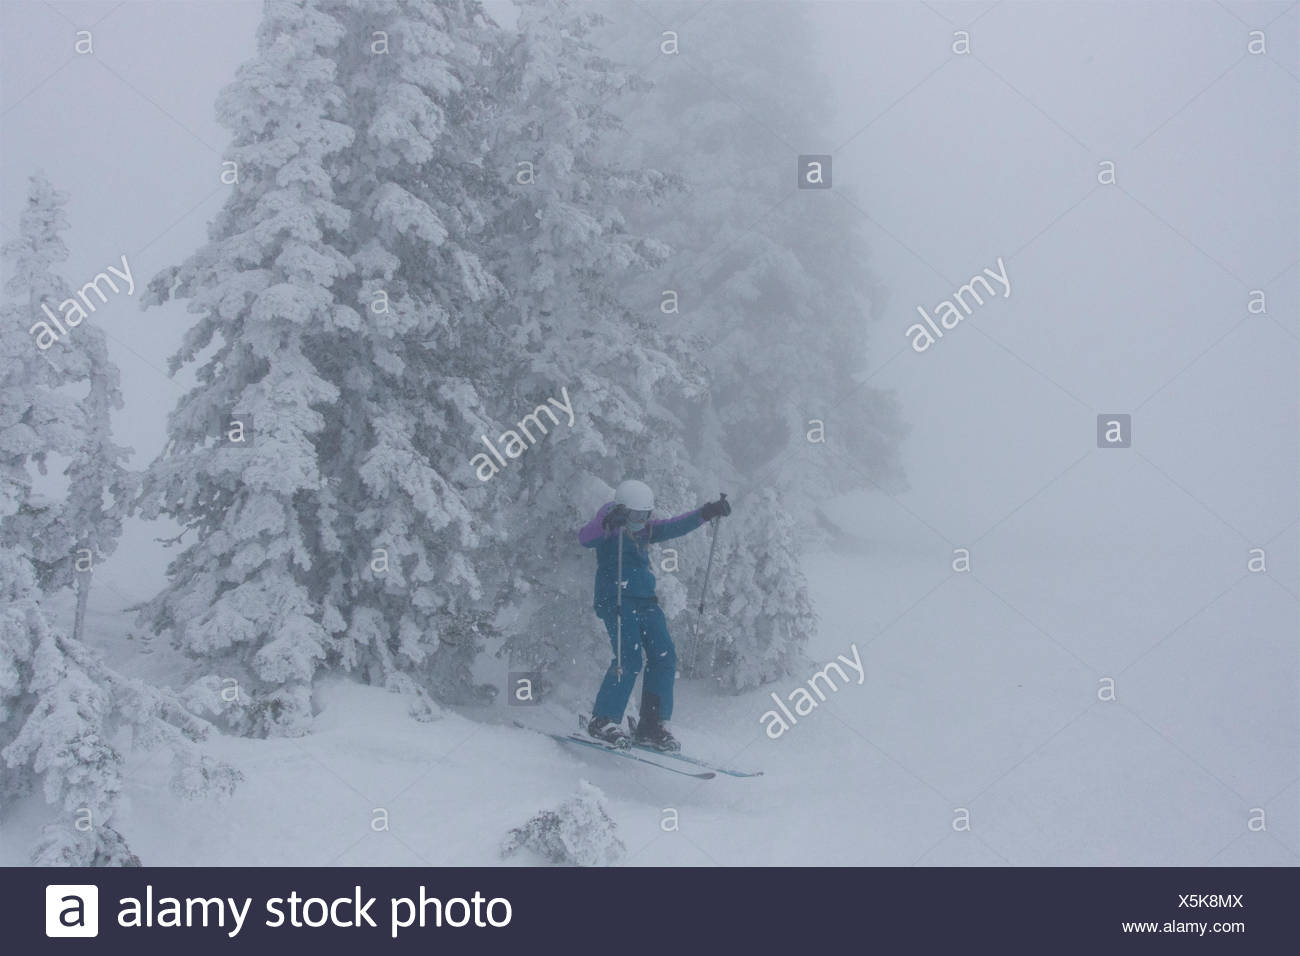 A teen girl skiing in foggy, whiteout conditions jumps through the rime covered conifer trees. - Stock Image